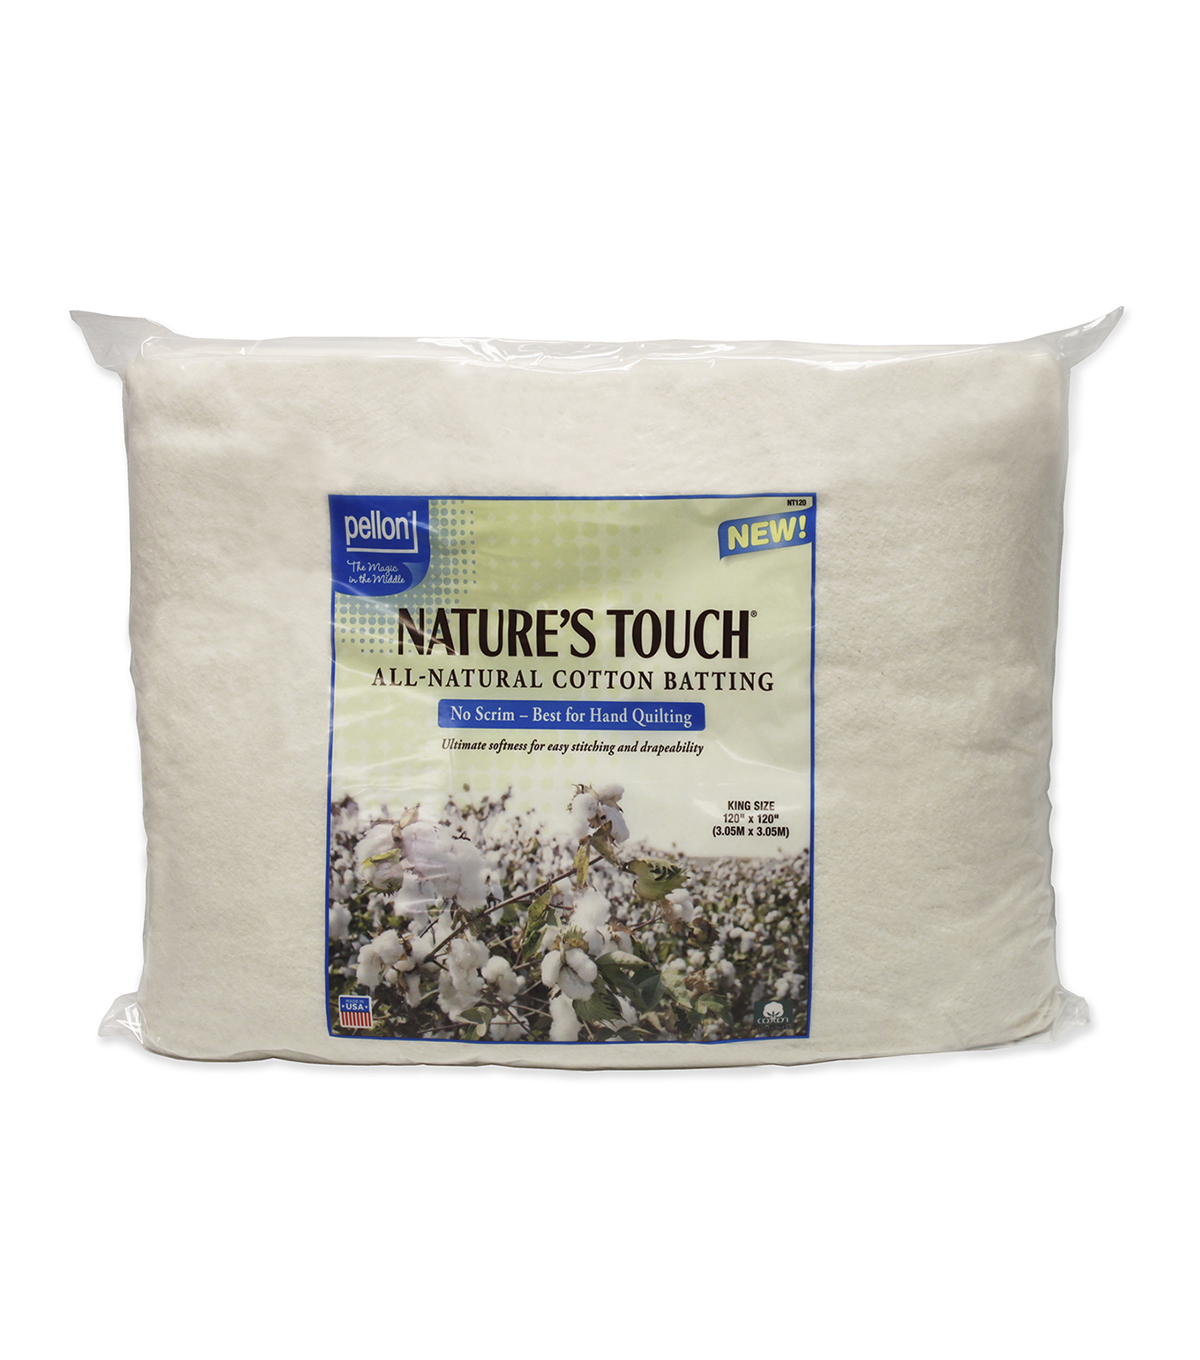 Pellon Natures Touch Natural Cotton King Batting 120X120